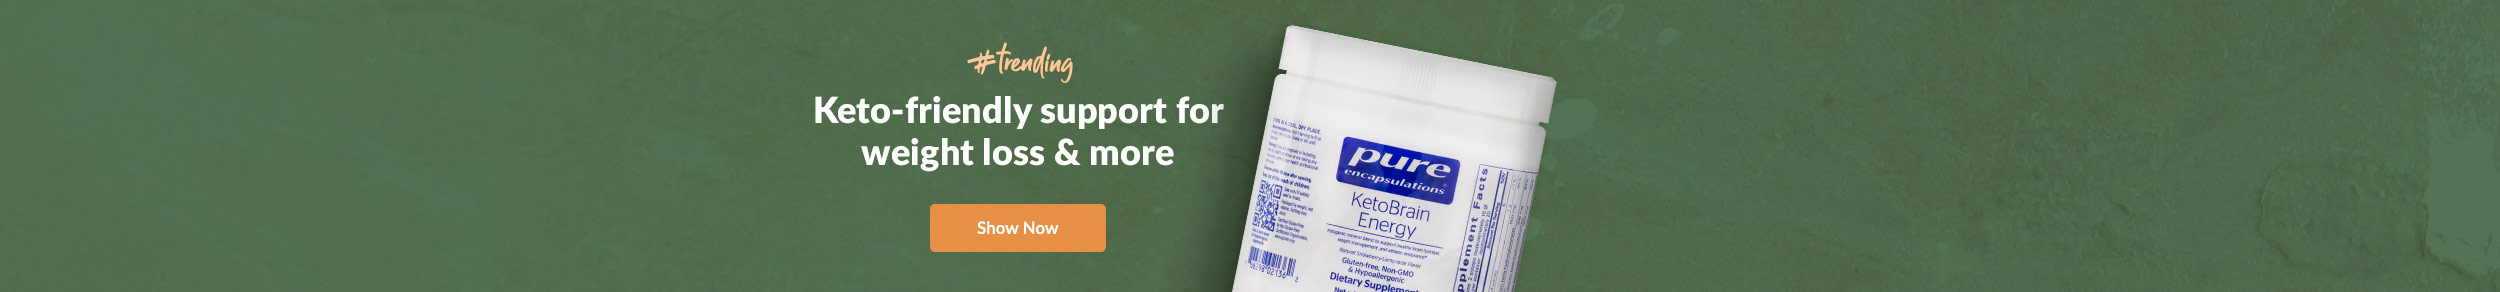 KetoBrain Energy by Pure Encapsulations: Keto-Friendly support for weight loss & more - Shop Now!